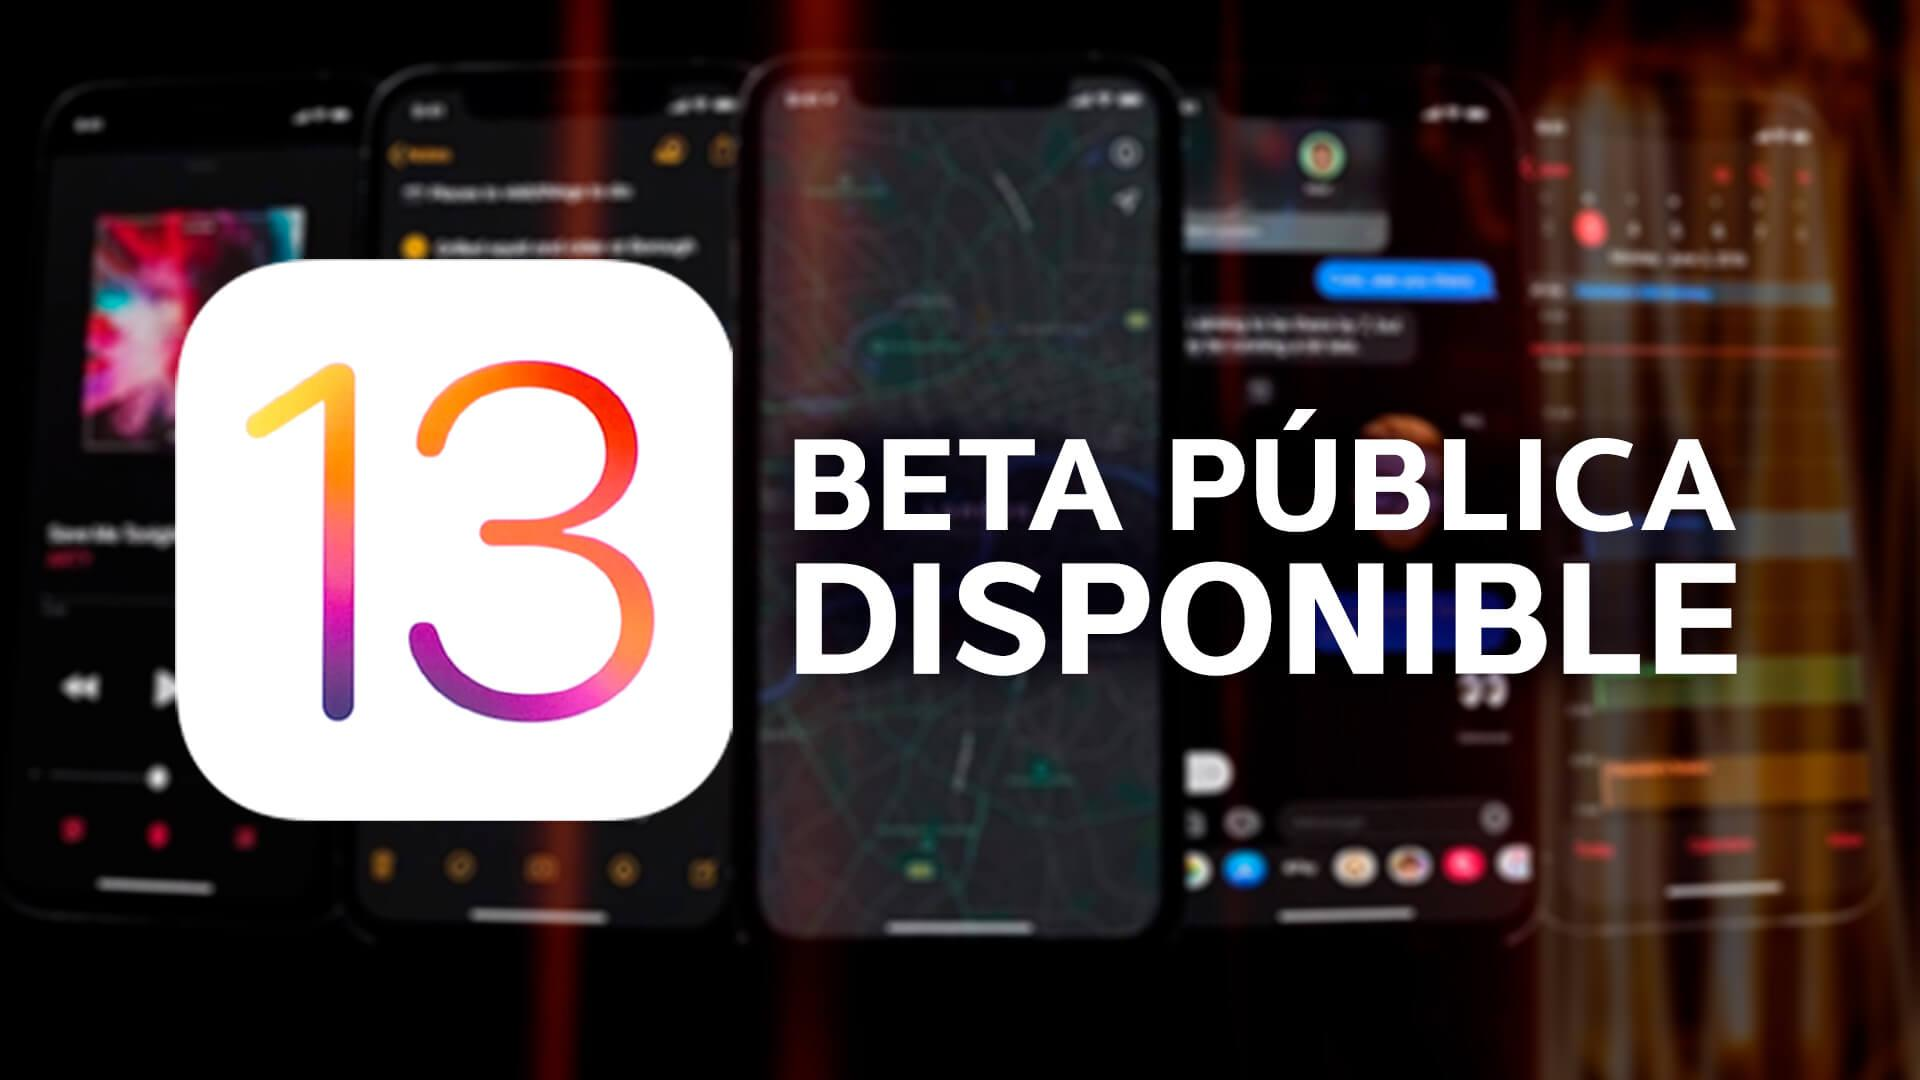 IOS 13 ya está disponible en beta: requisitos y cómo instalarlo